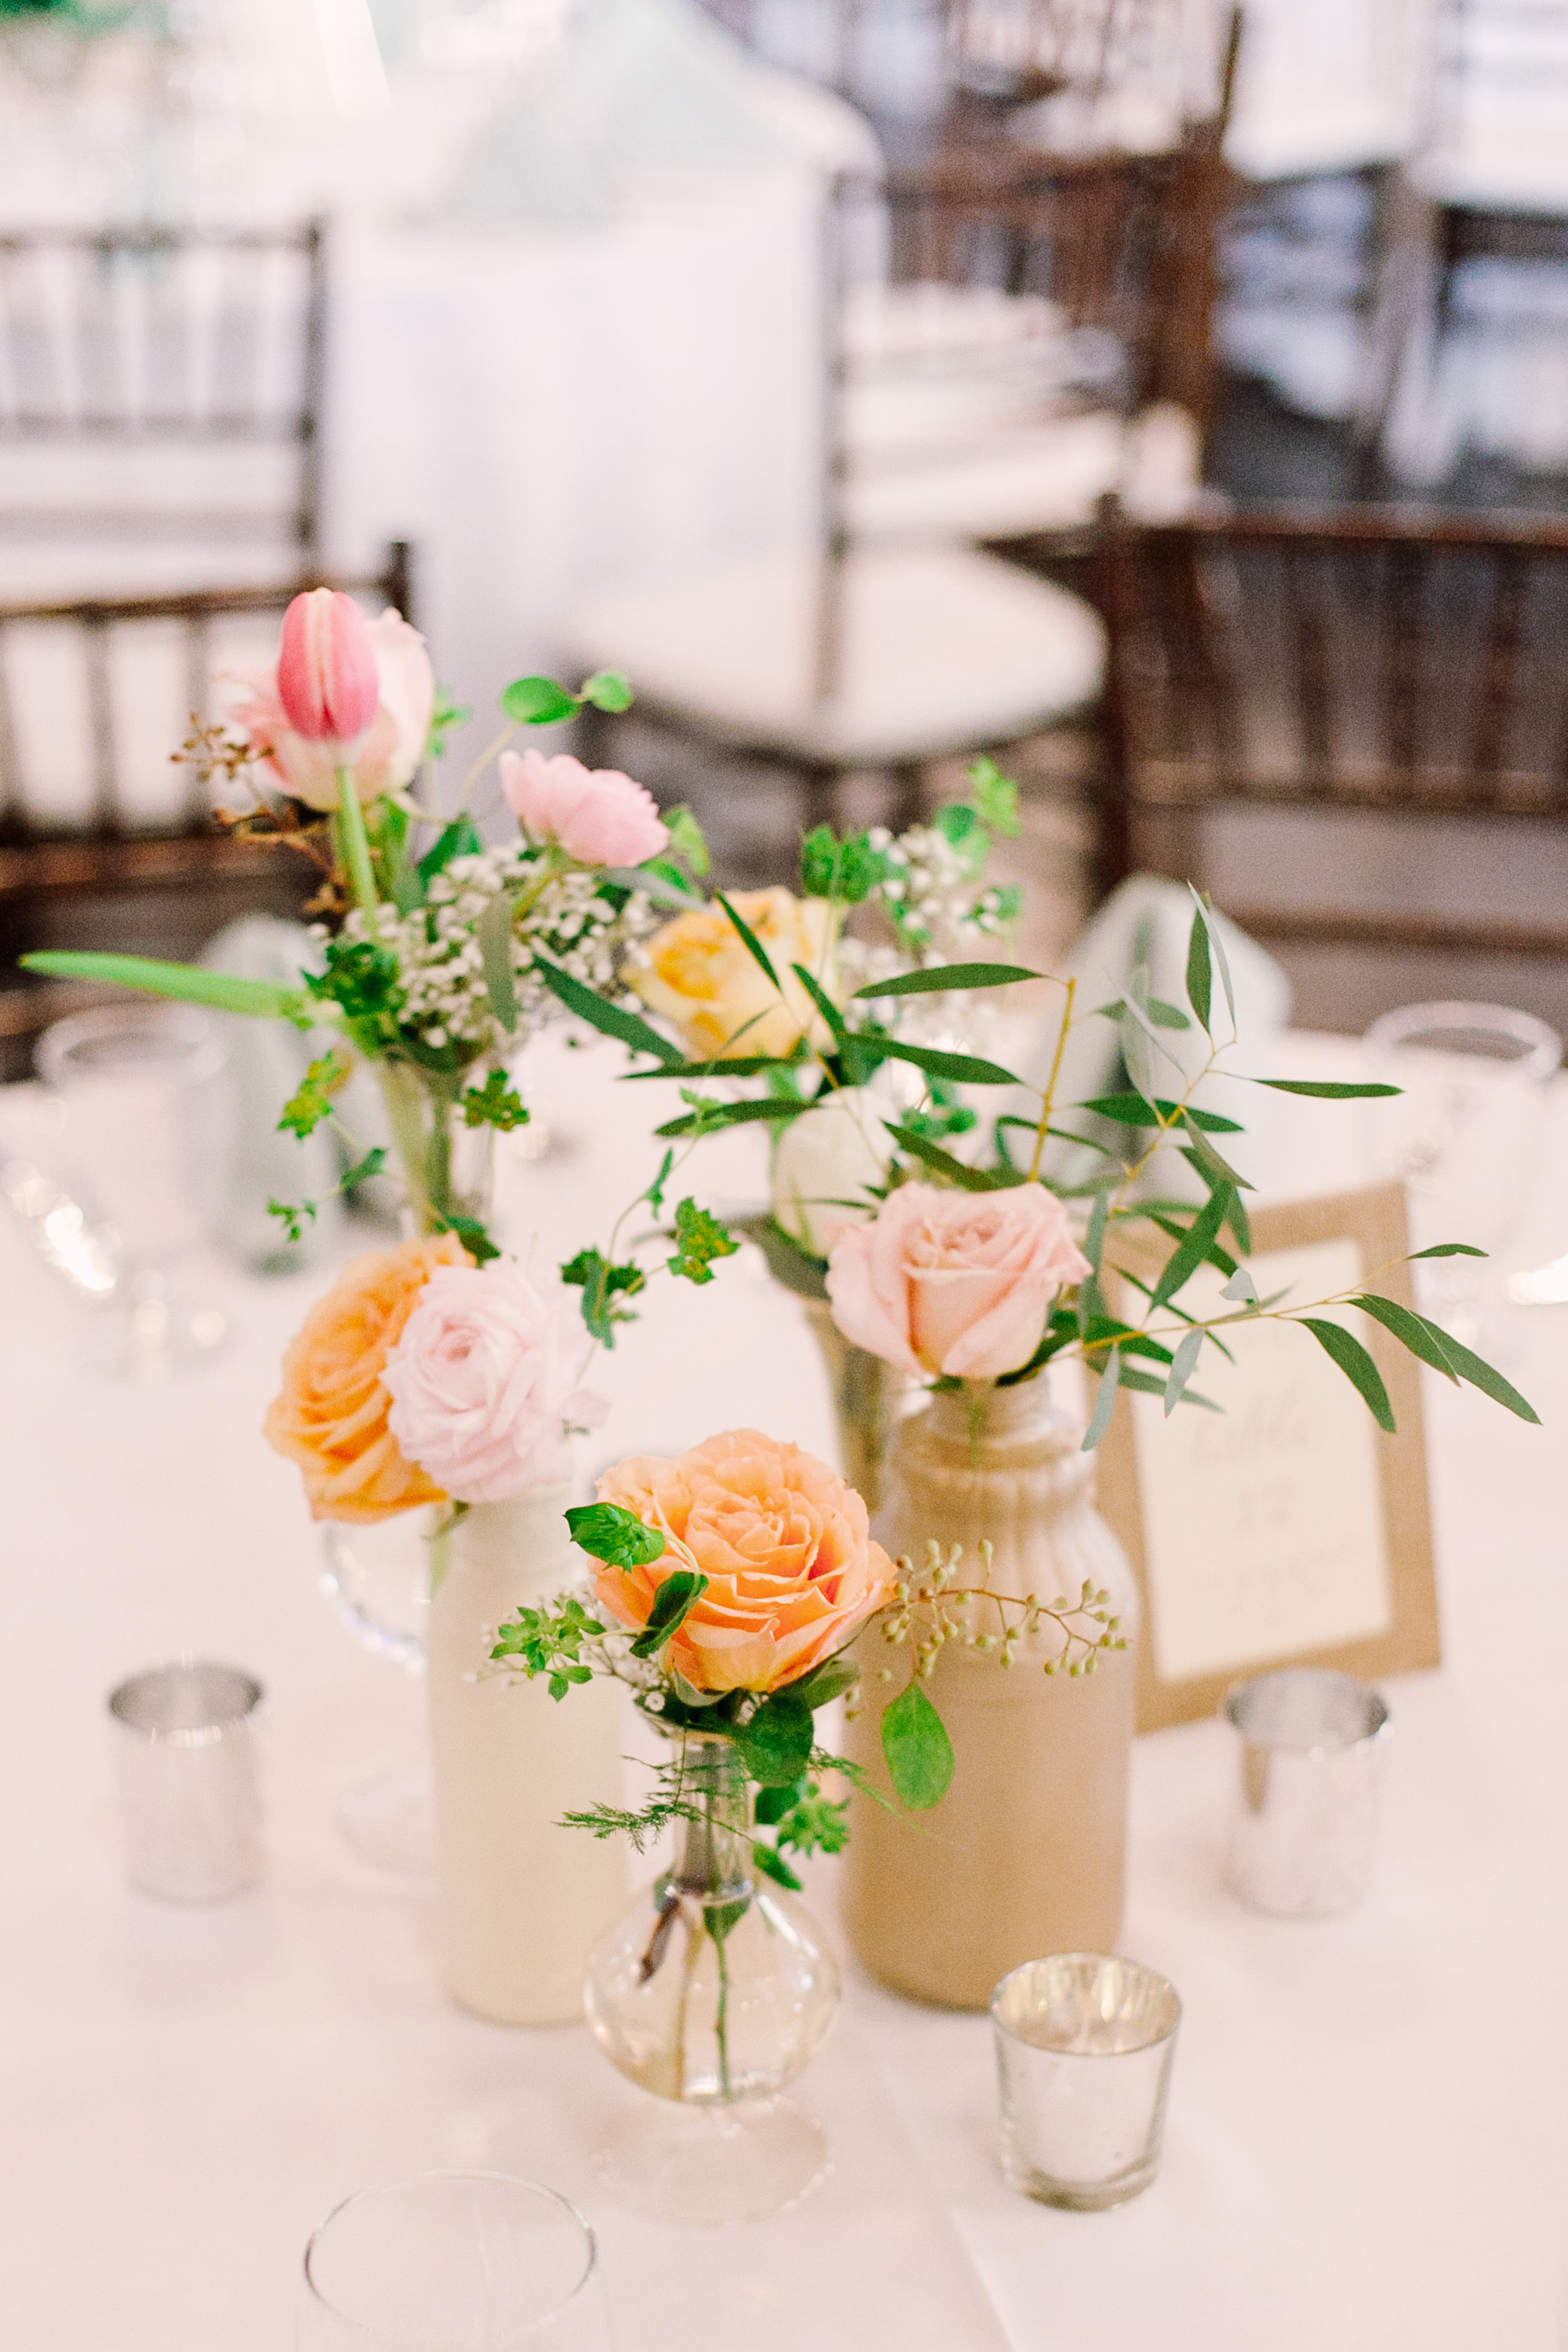 Pastel Cluster Centerpieces in Mismatched Vases